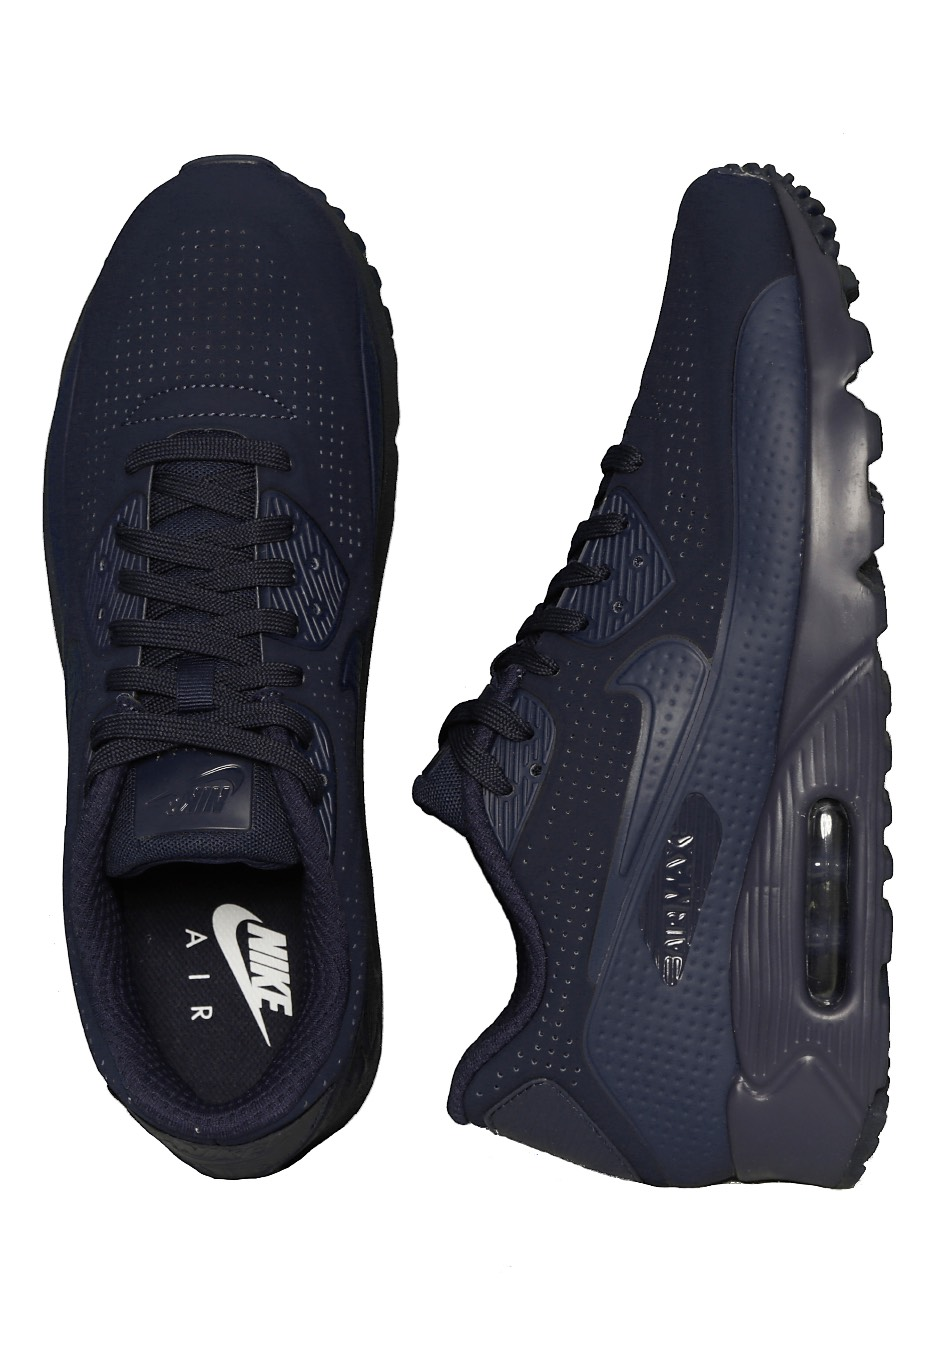 b7cb53d120b081 Nike - Air Max 90 Ultra Moire Midnight Navy Midnight Navy White - Shoes -  Impericon.com UK